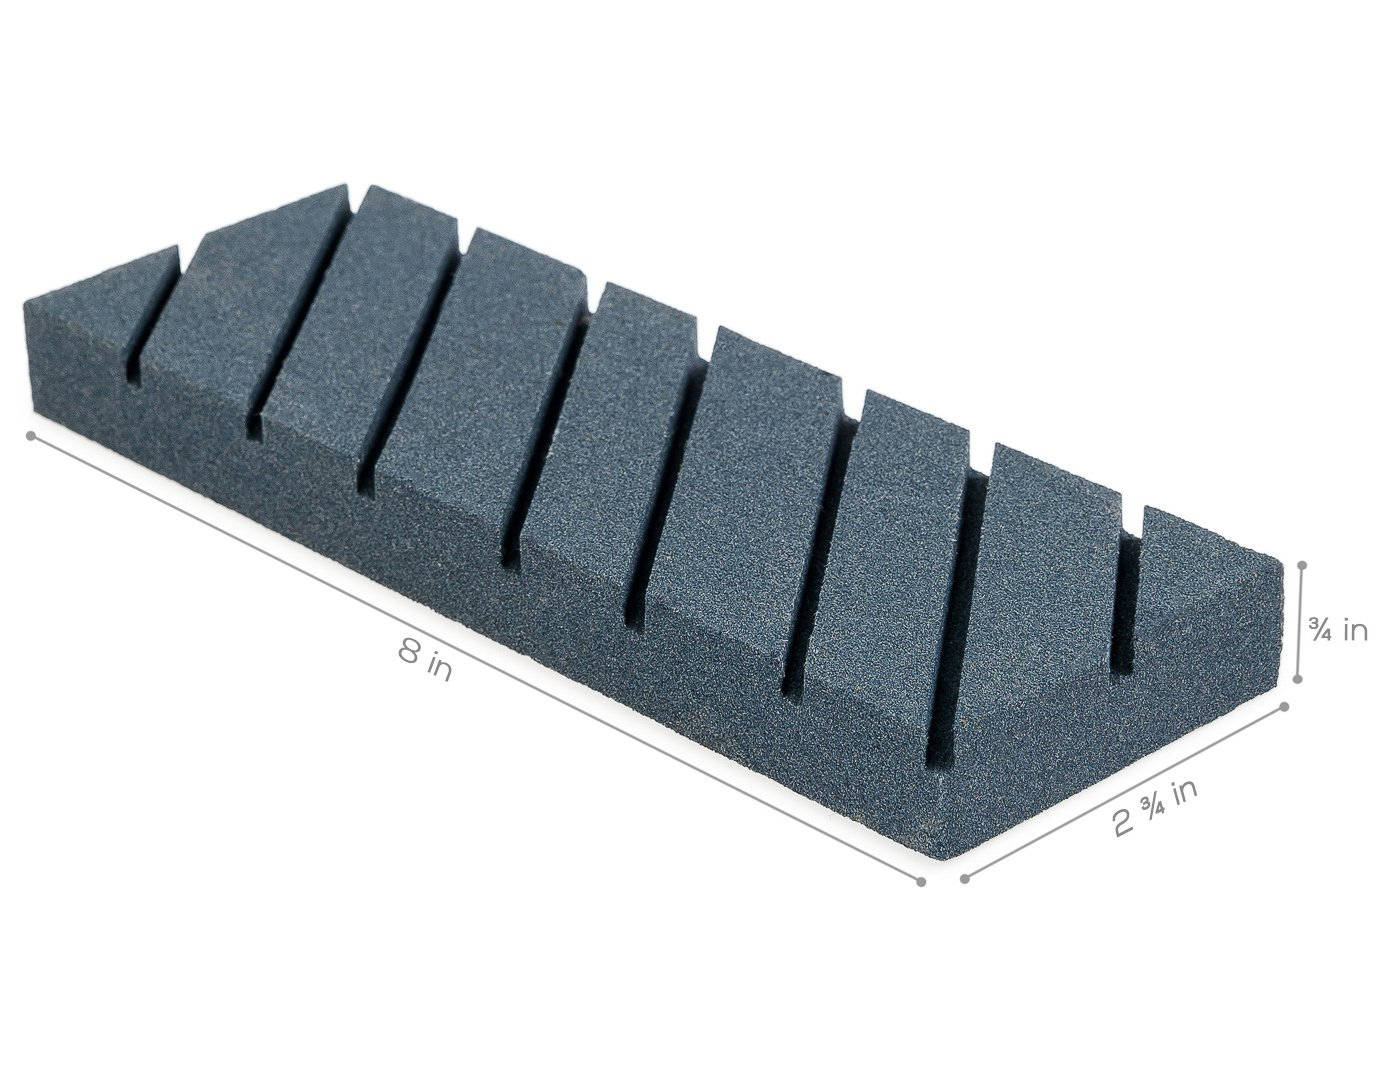 Oil Stones Coarse Grinding Lapping Plate with Grooves /& Rough Grit Whetstone Sharpening Tool for Re-Leveling Waterstone Nordstrand Flattening Stone Flattener Fixer Sharpener for Waterstones